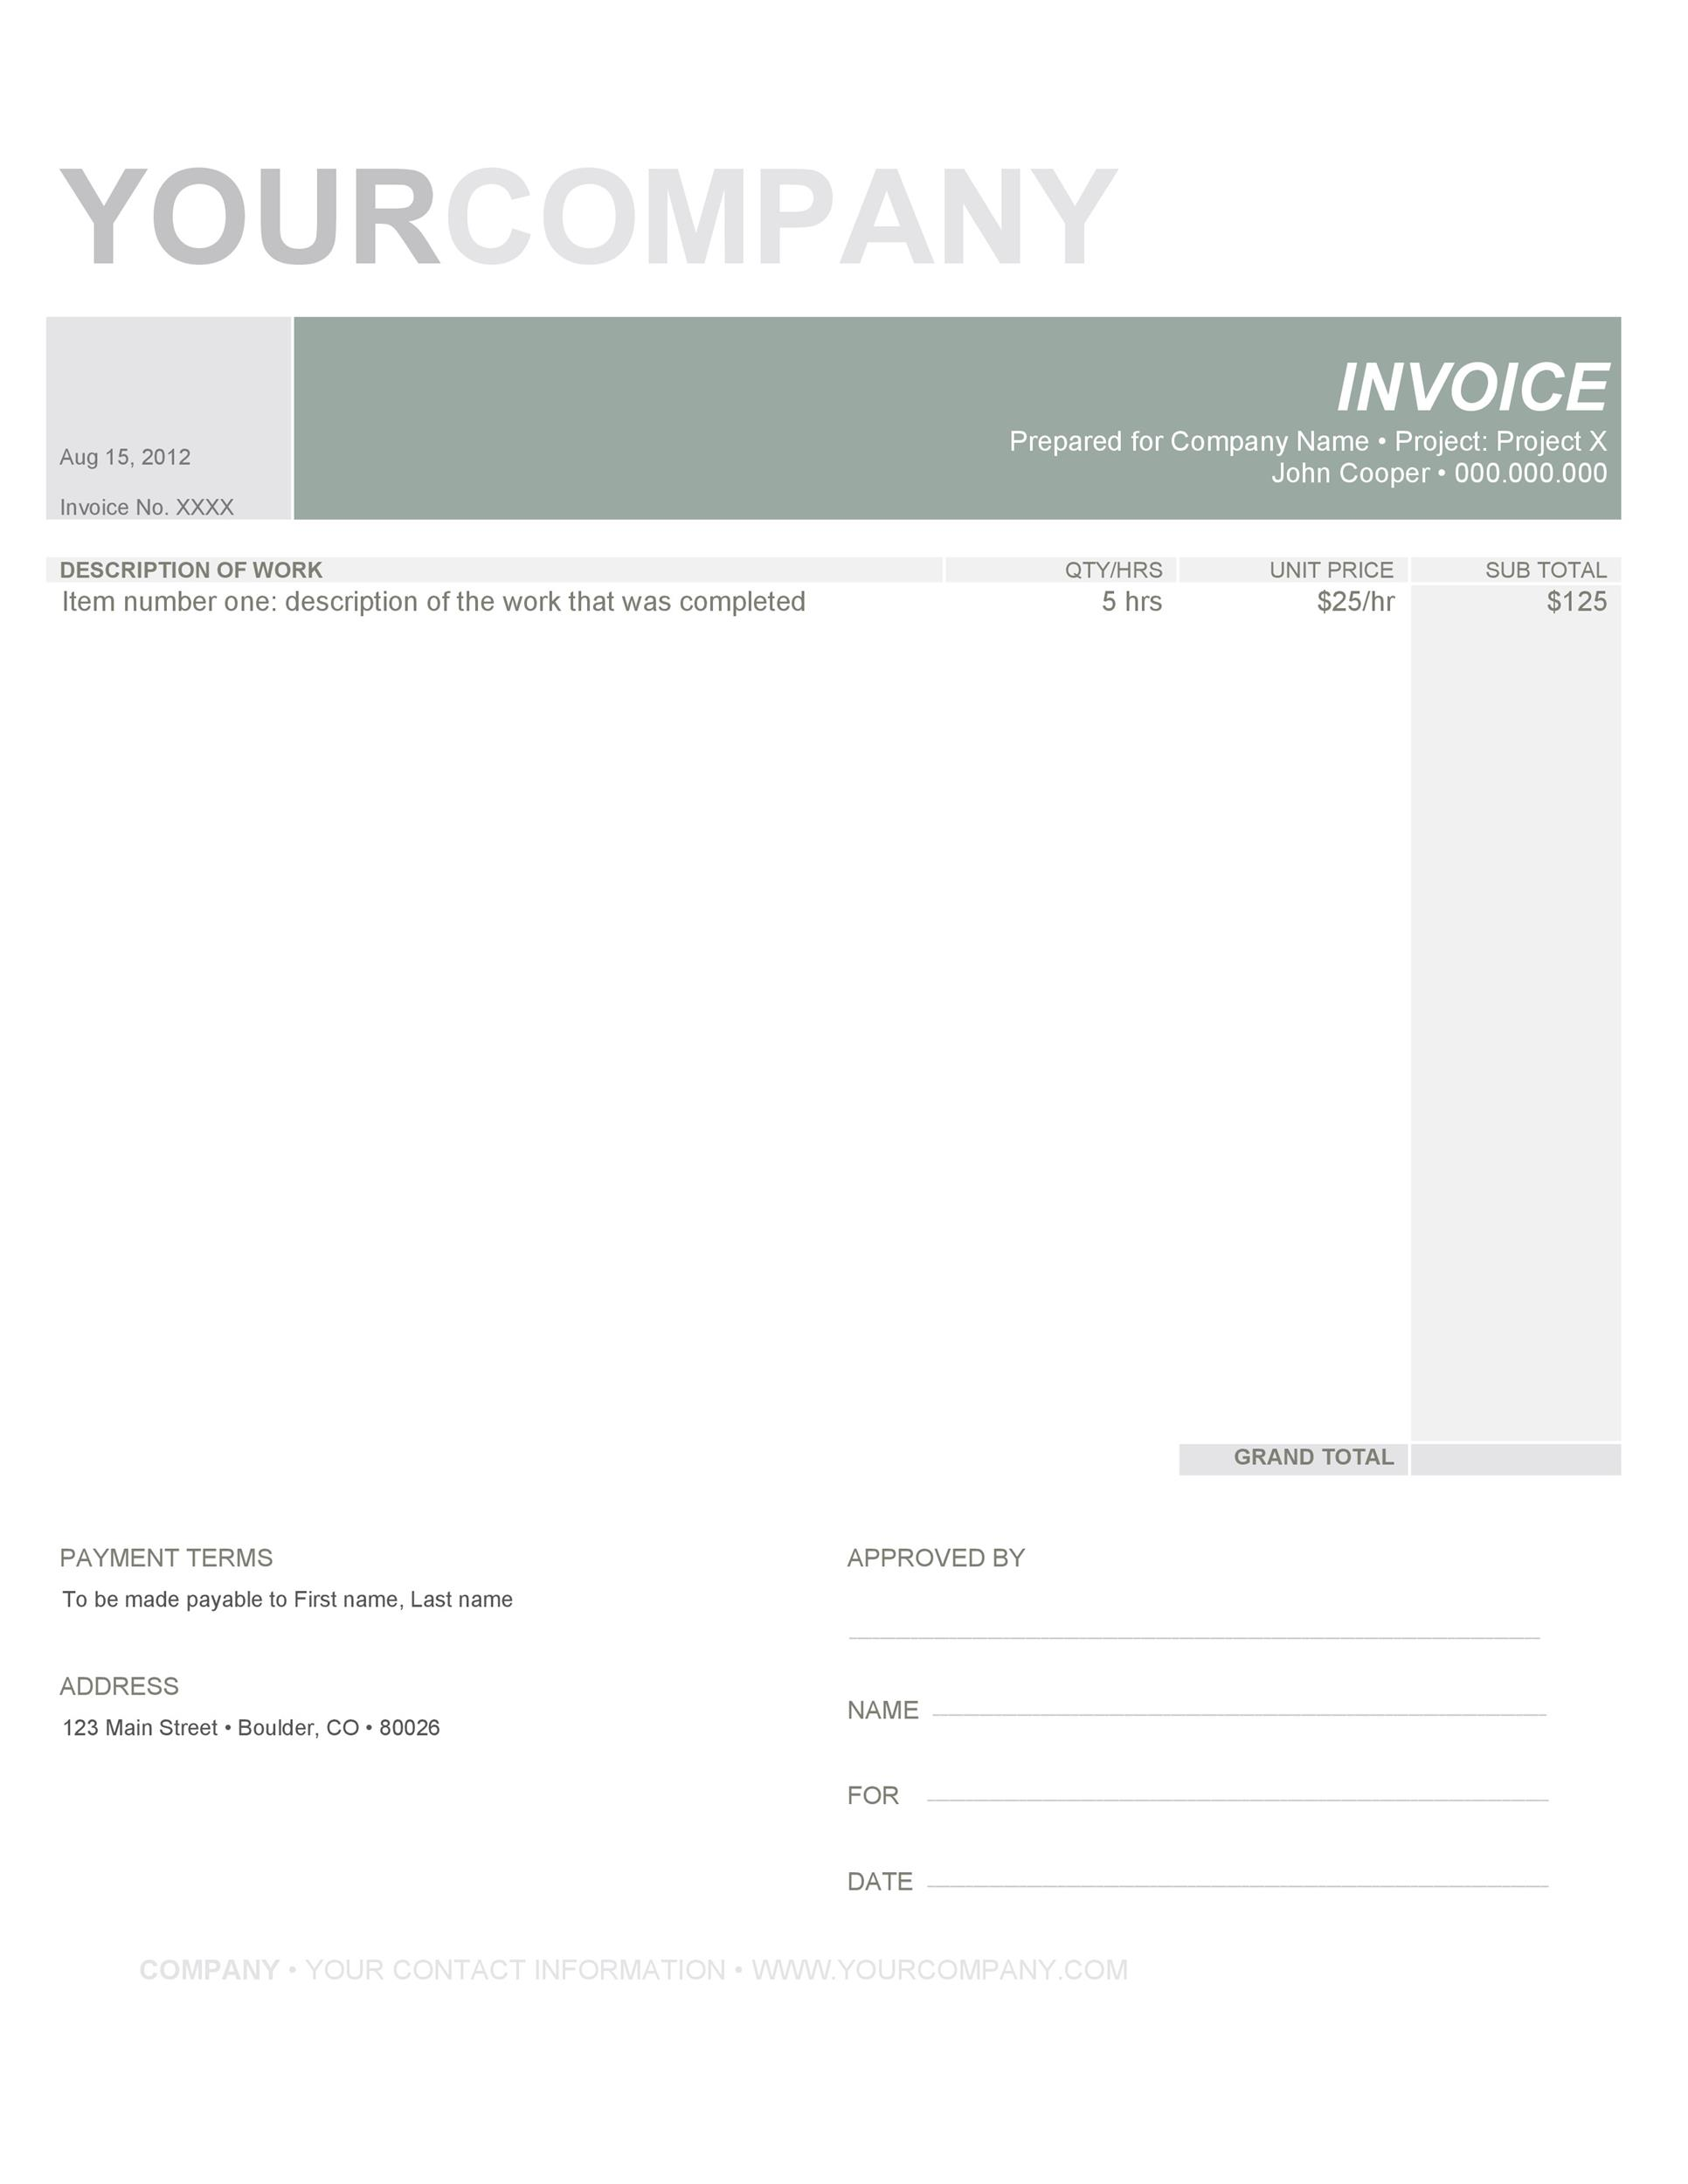 download labor invoice template word | rabitah, Invoice examples